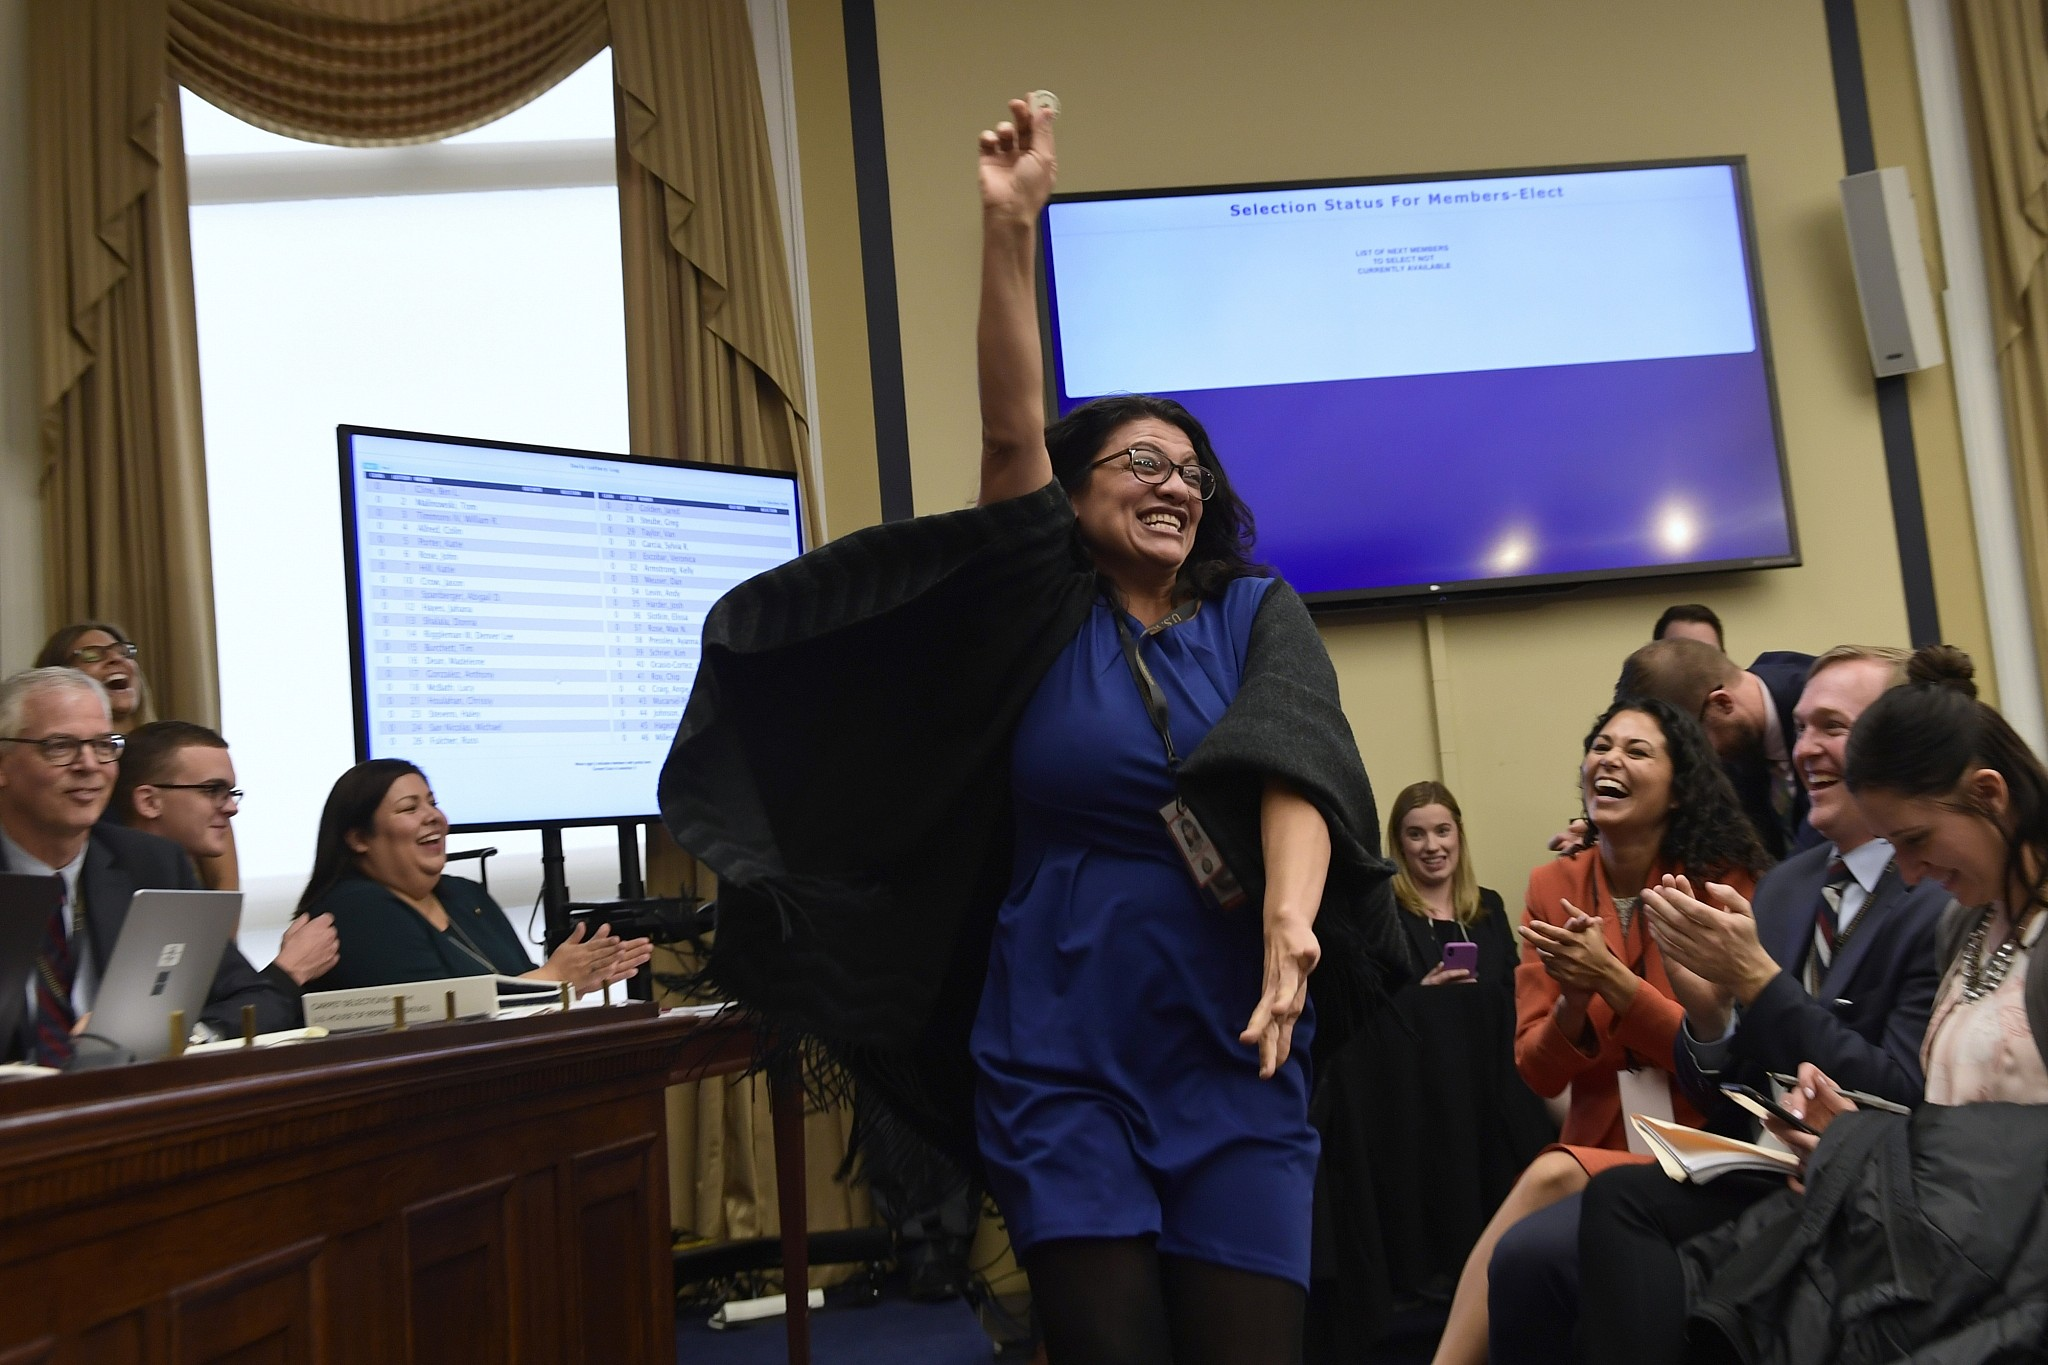 Michigan Congresswoman Rashida Tlaib stands by explicit comments about Trump